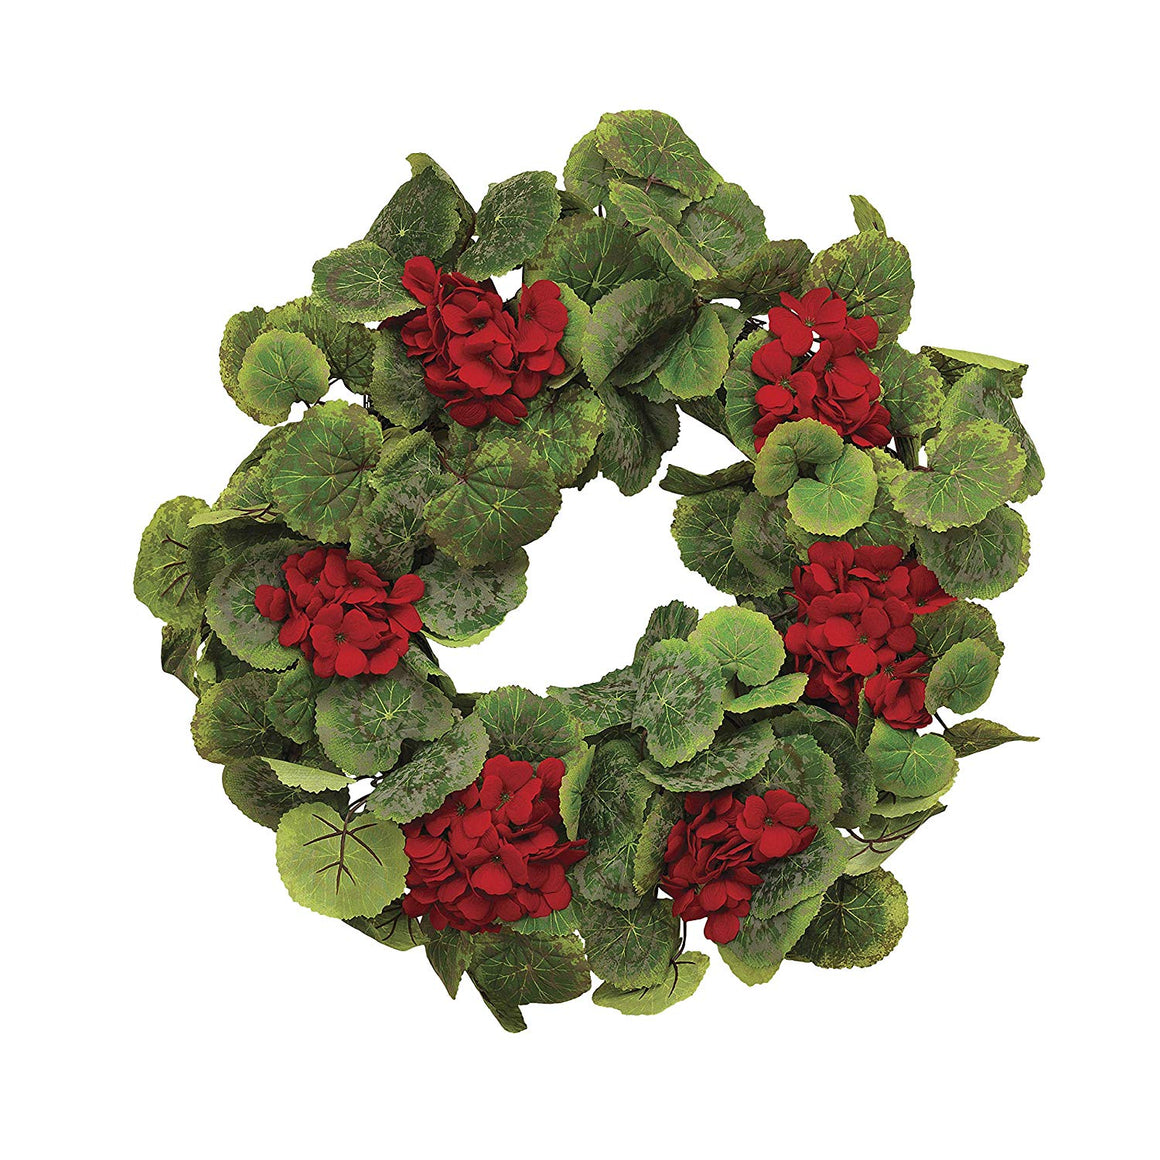 22 Inch Red Geranium Wreath on a Hand Tied Twig Base, Artificial Floral, Spring and Summer Front Door Wreath